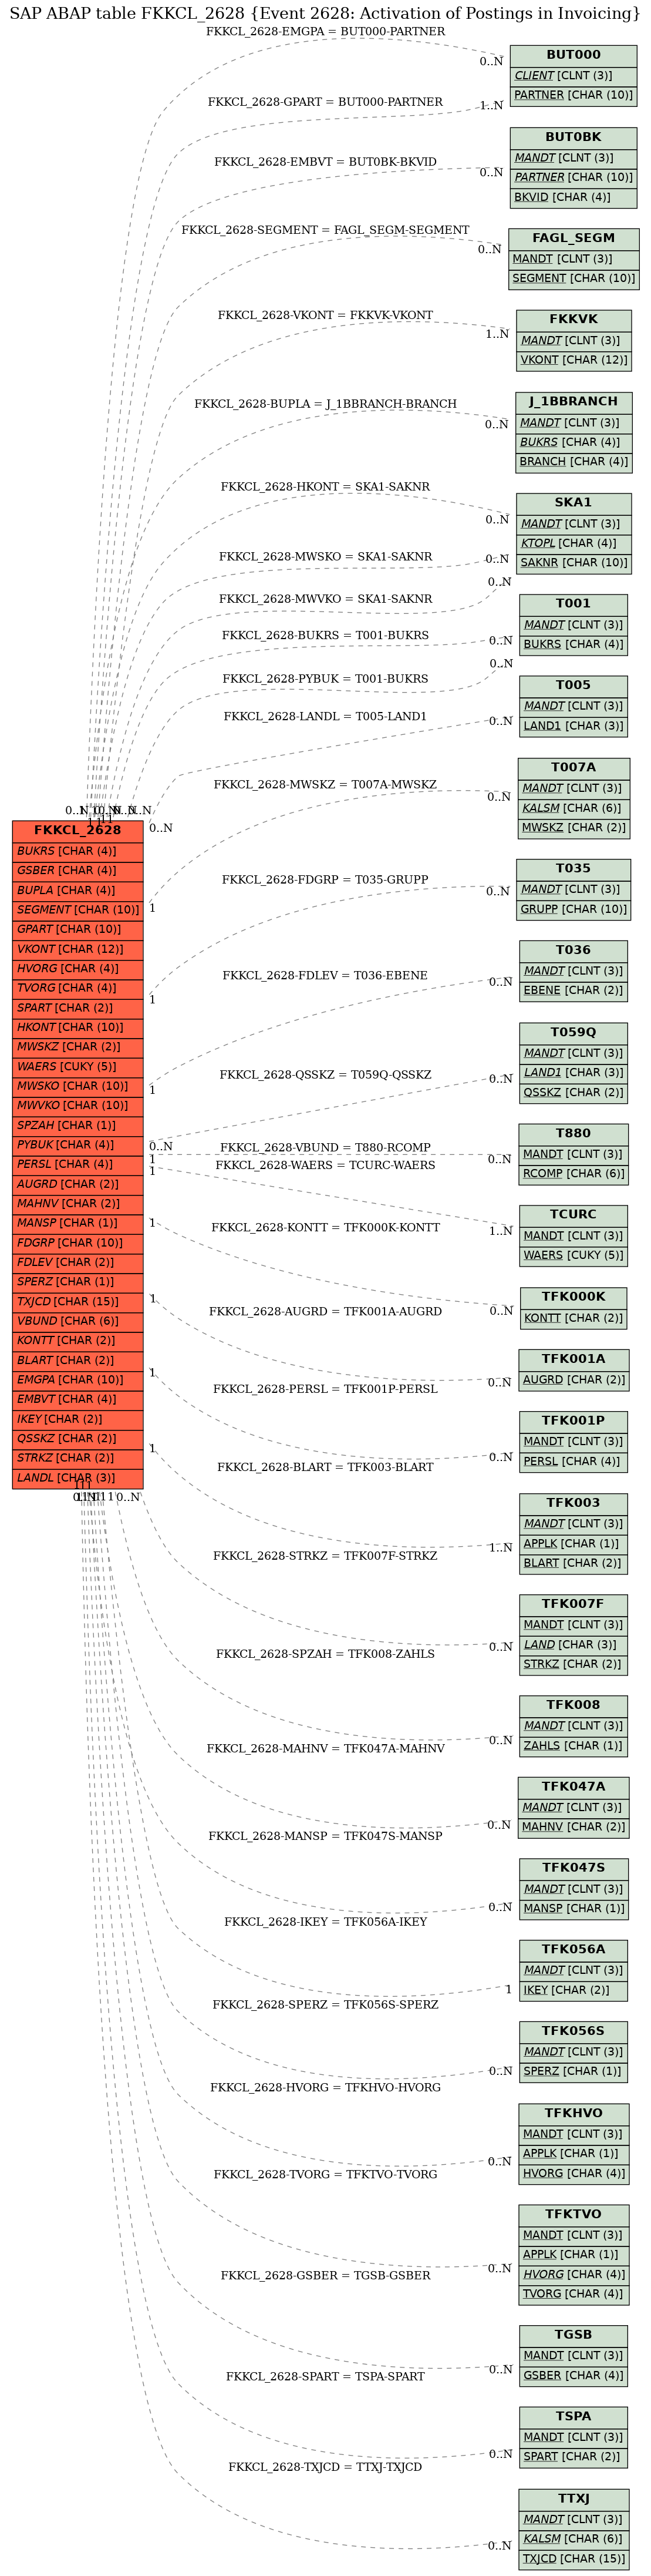 E-R Diagram for table FKKCL_2628 (Event 2628: Activation of Postings in Invoicing)